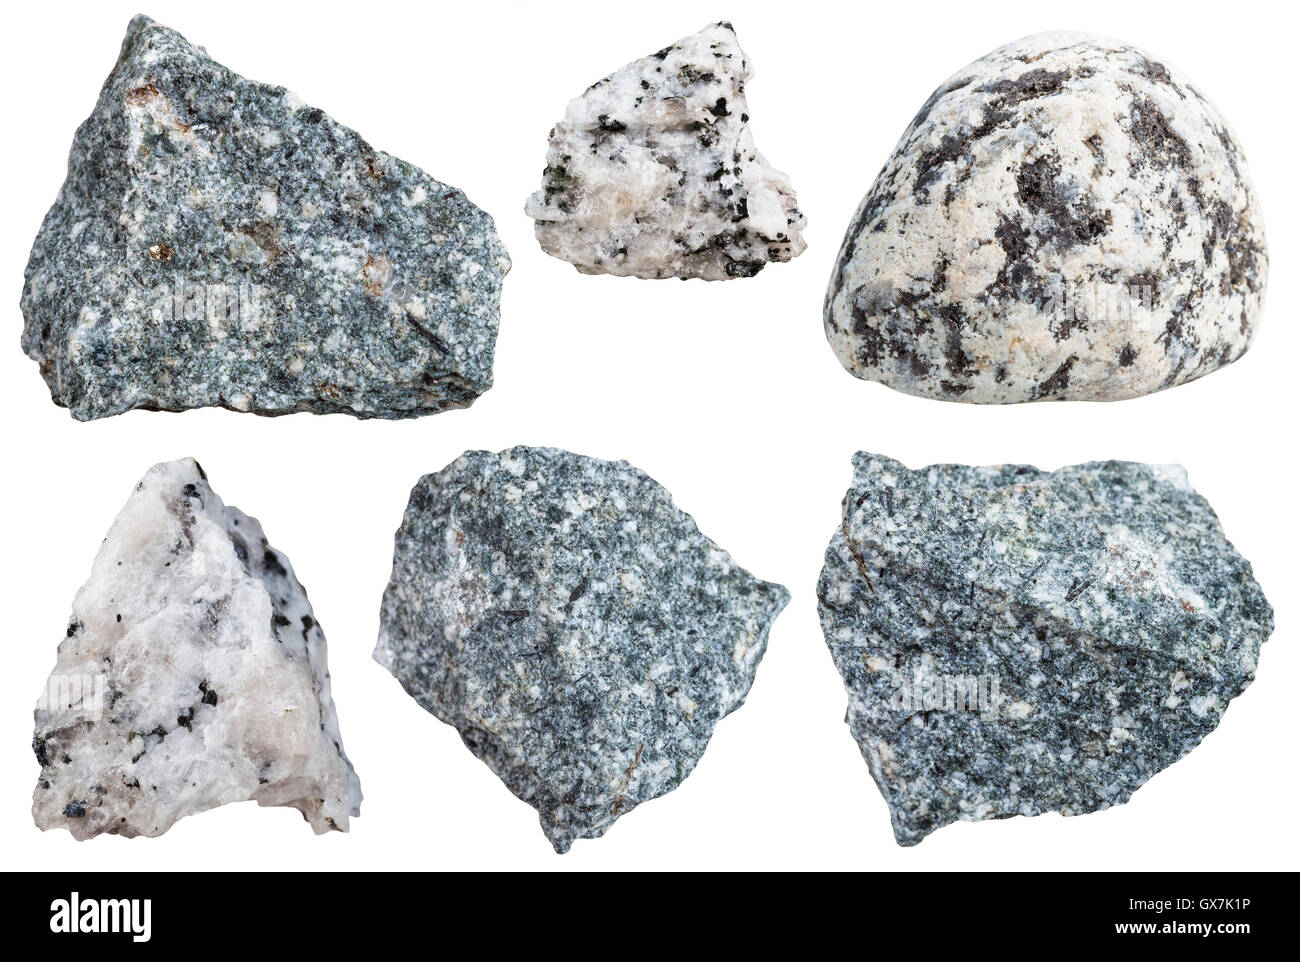 what kind of rock is diorite